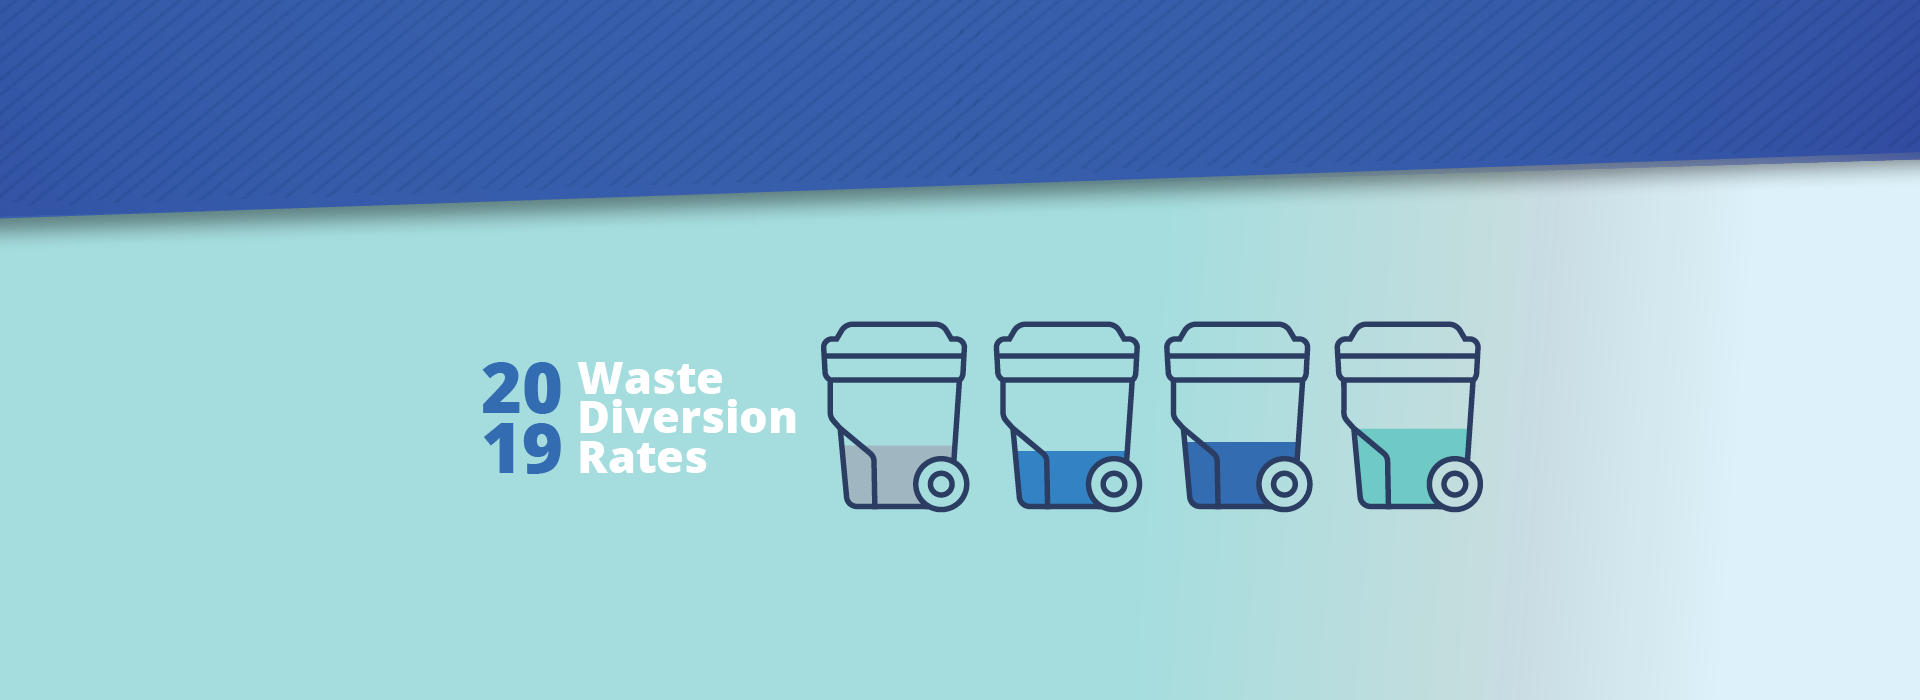 Olathe Waste diversion rate